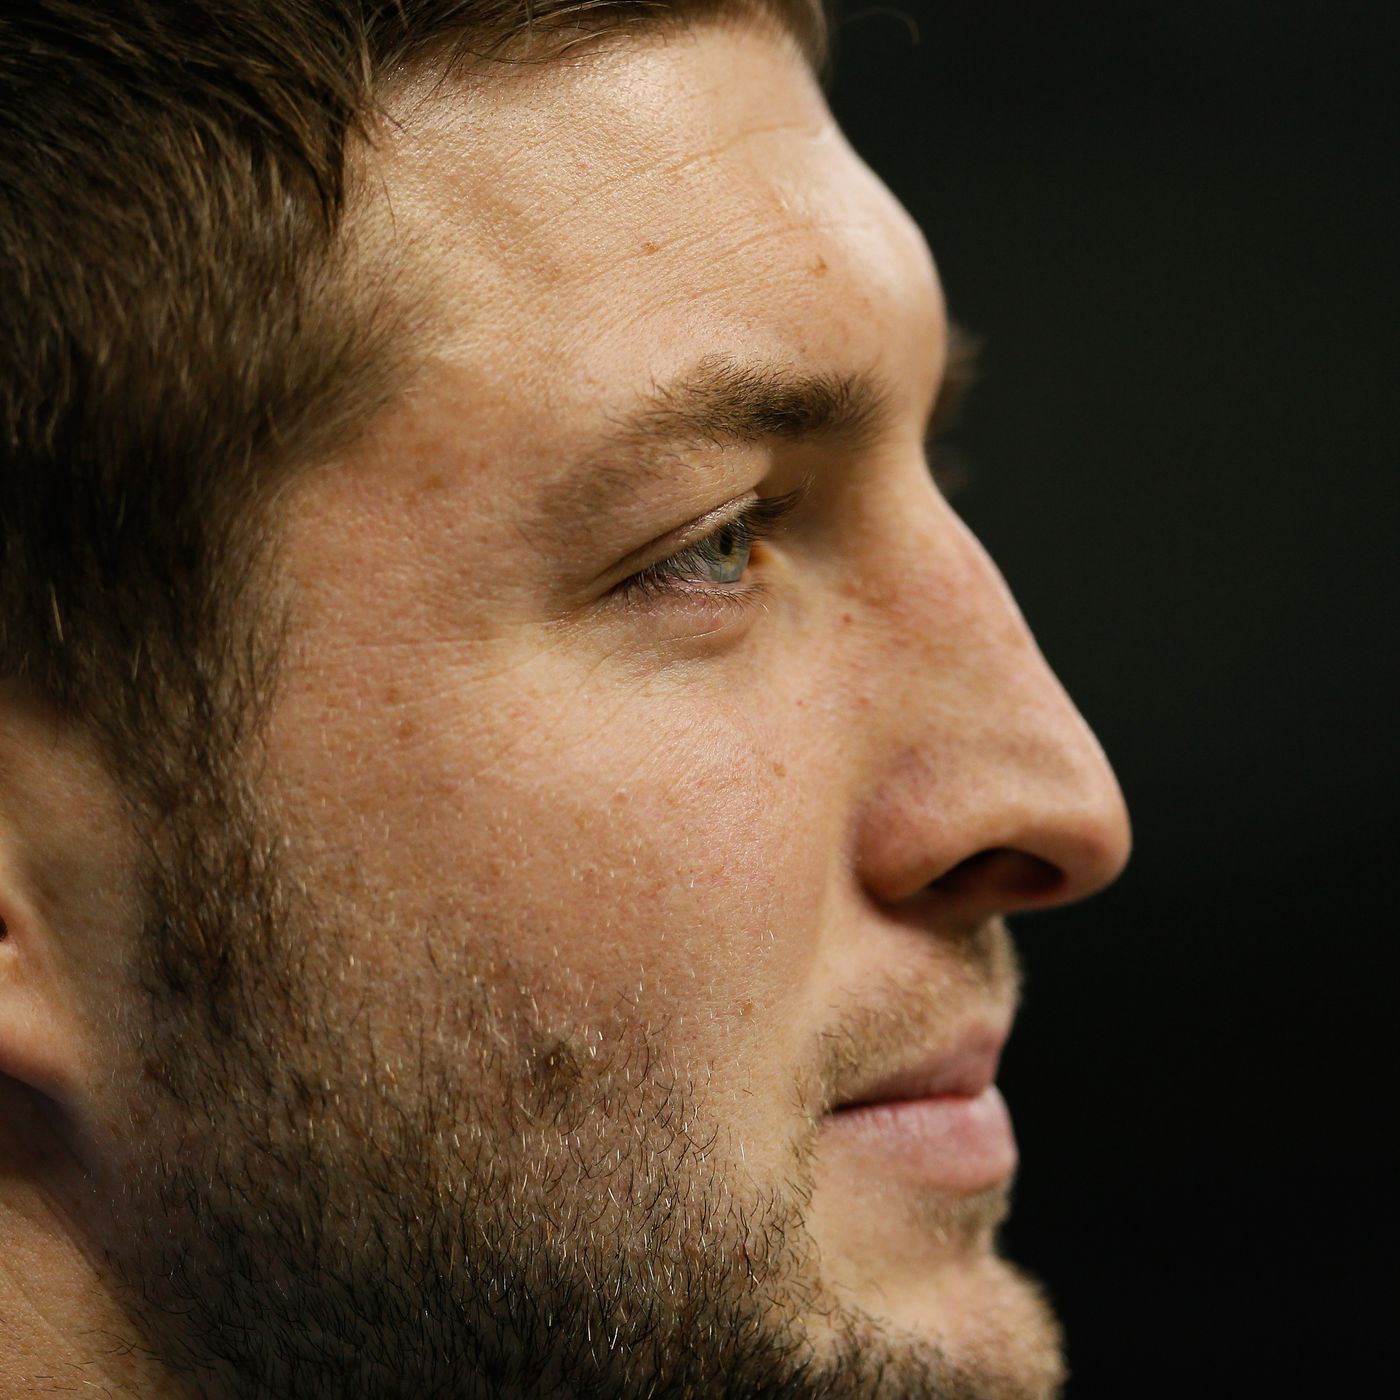 Is Tim Tebow gay? - Outsports